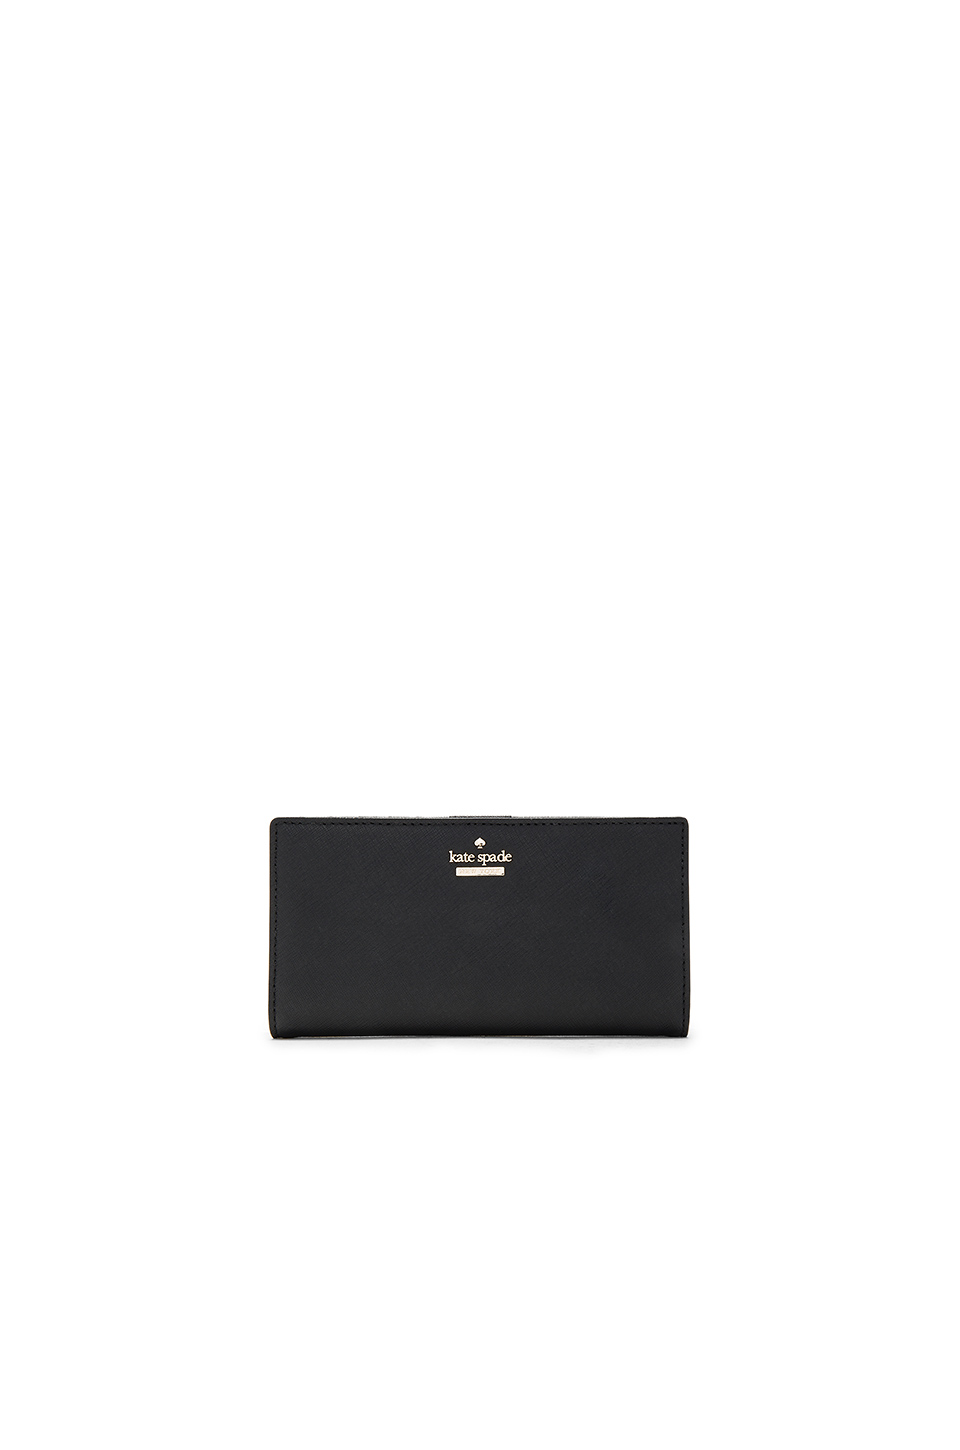 Kate Spade 'cameron Street - Stacy' Textured Leather Wallet In Black